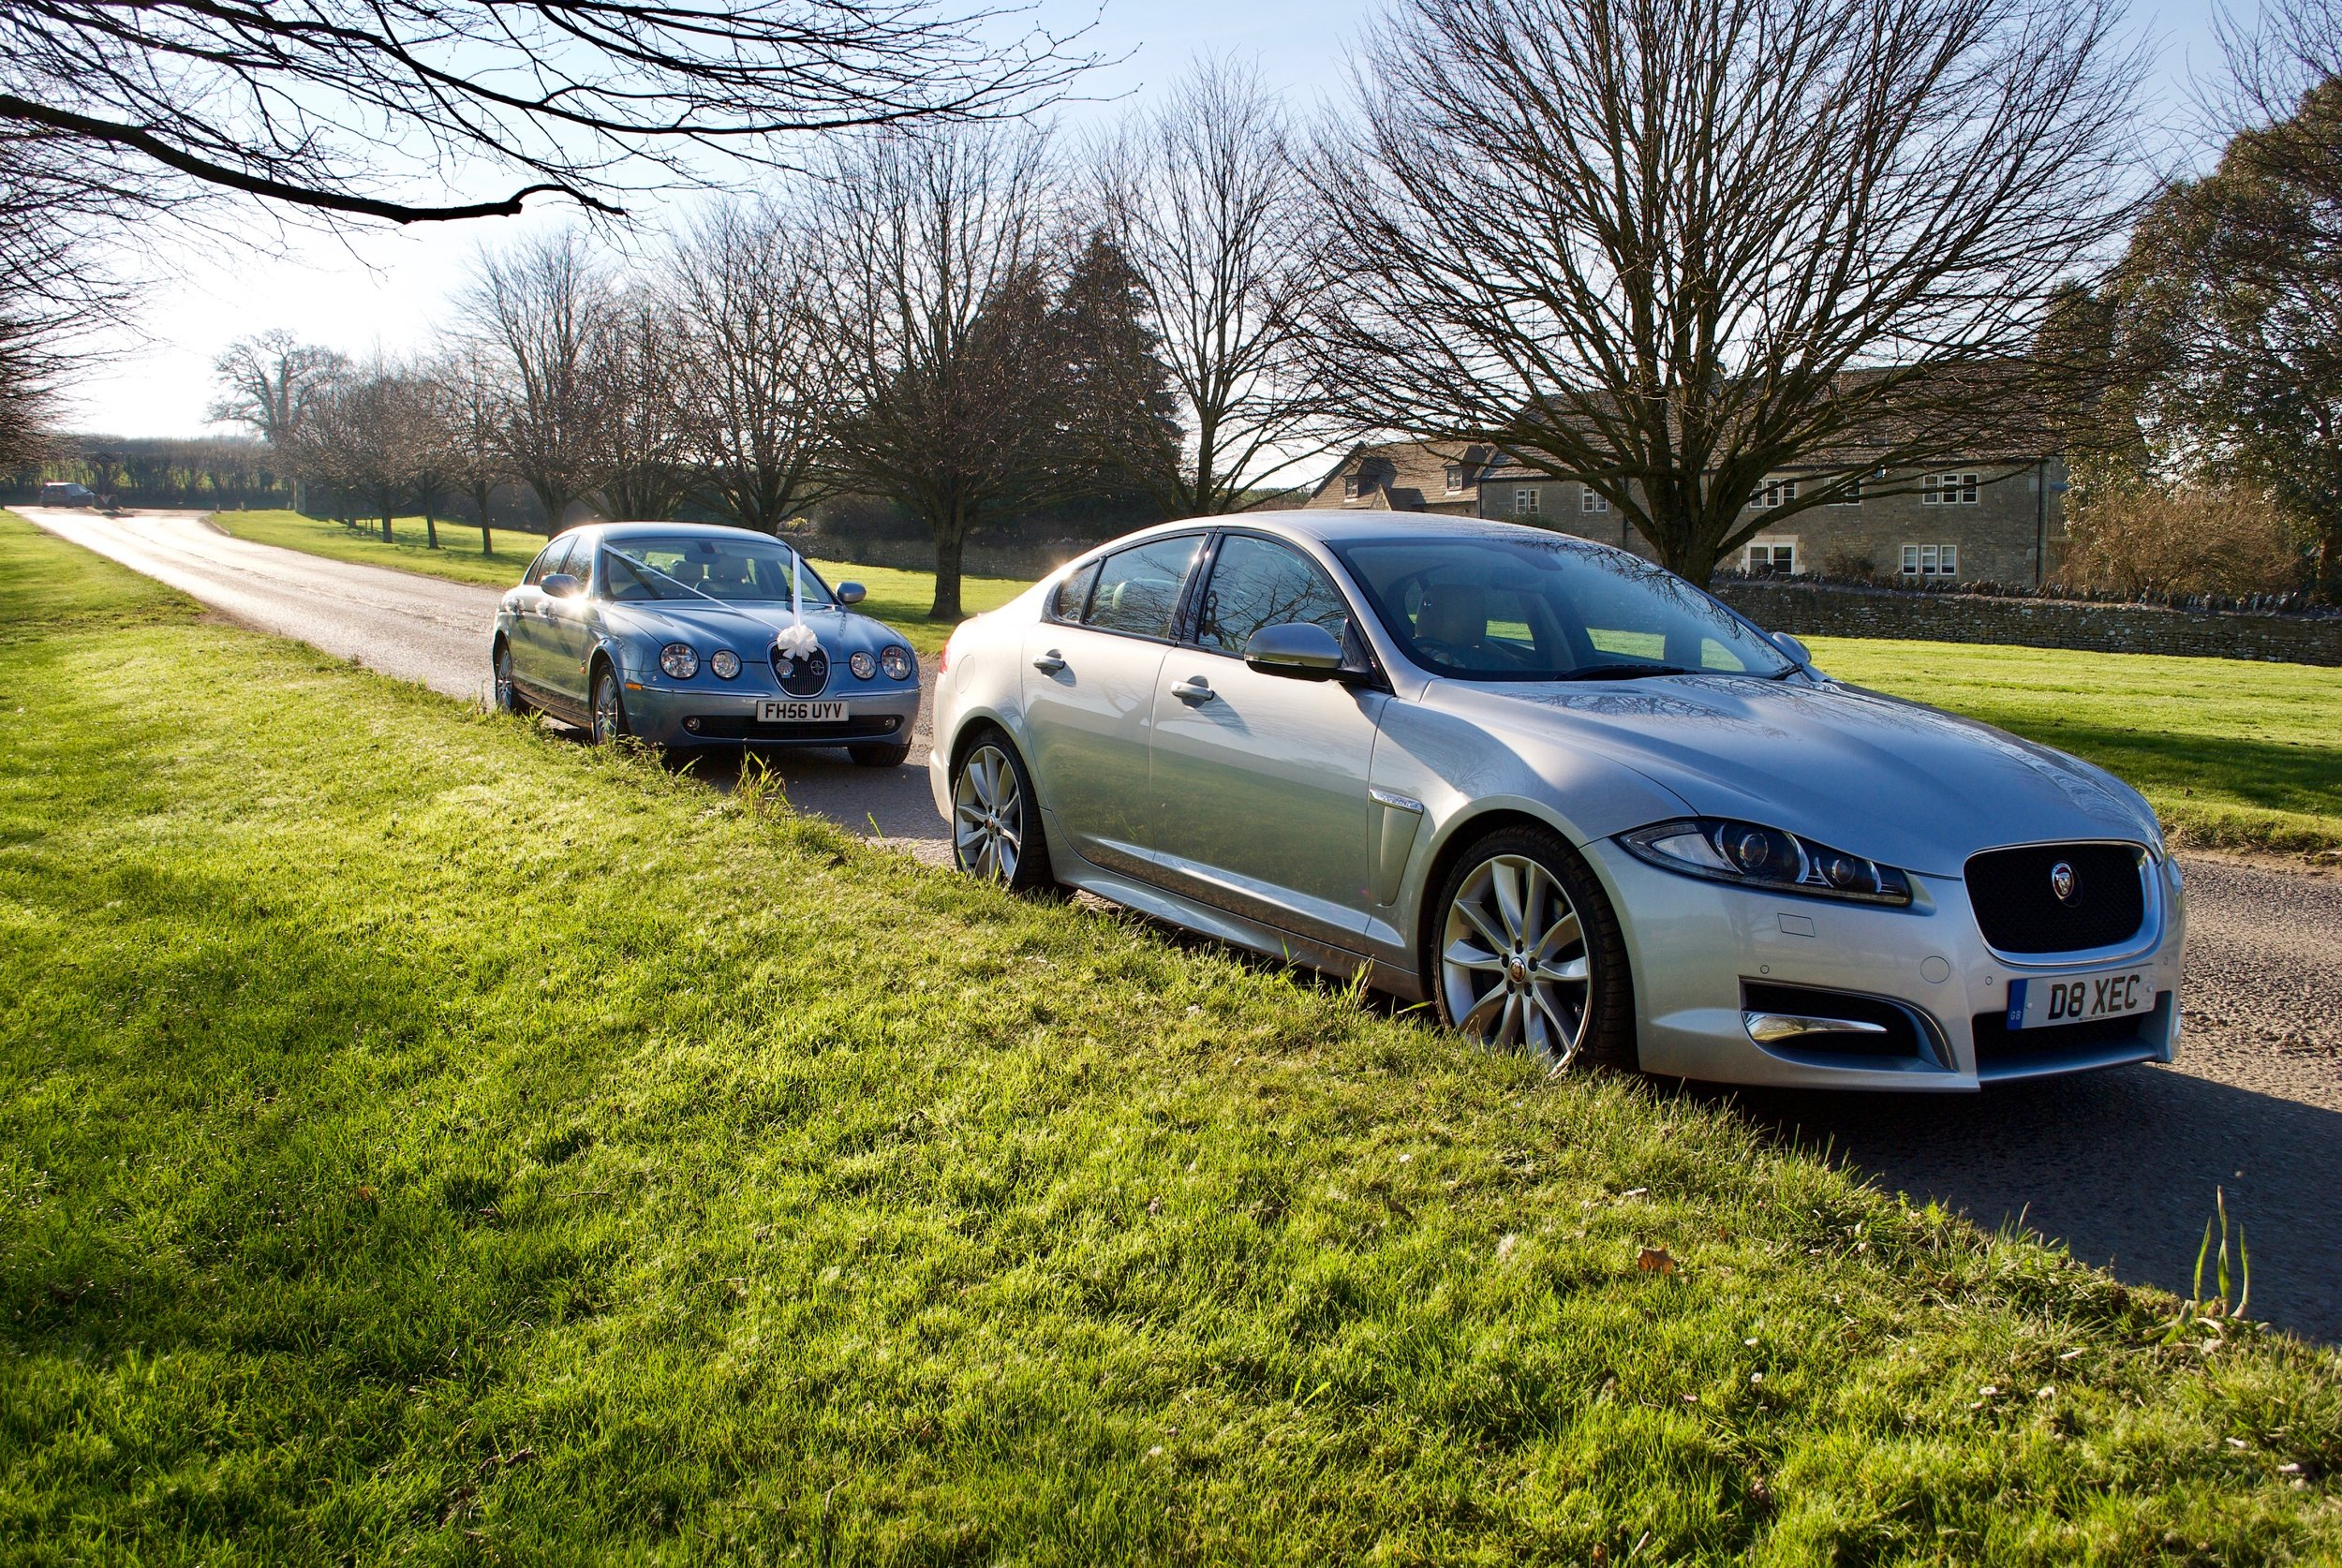 Jaguar S Type & Jaguar XFS at Cumberwell Park